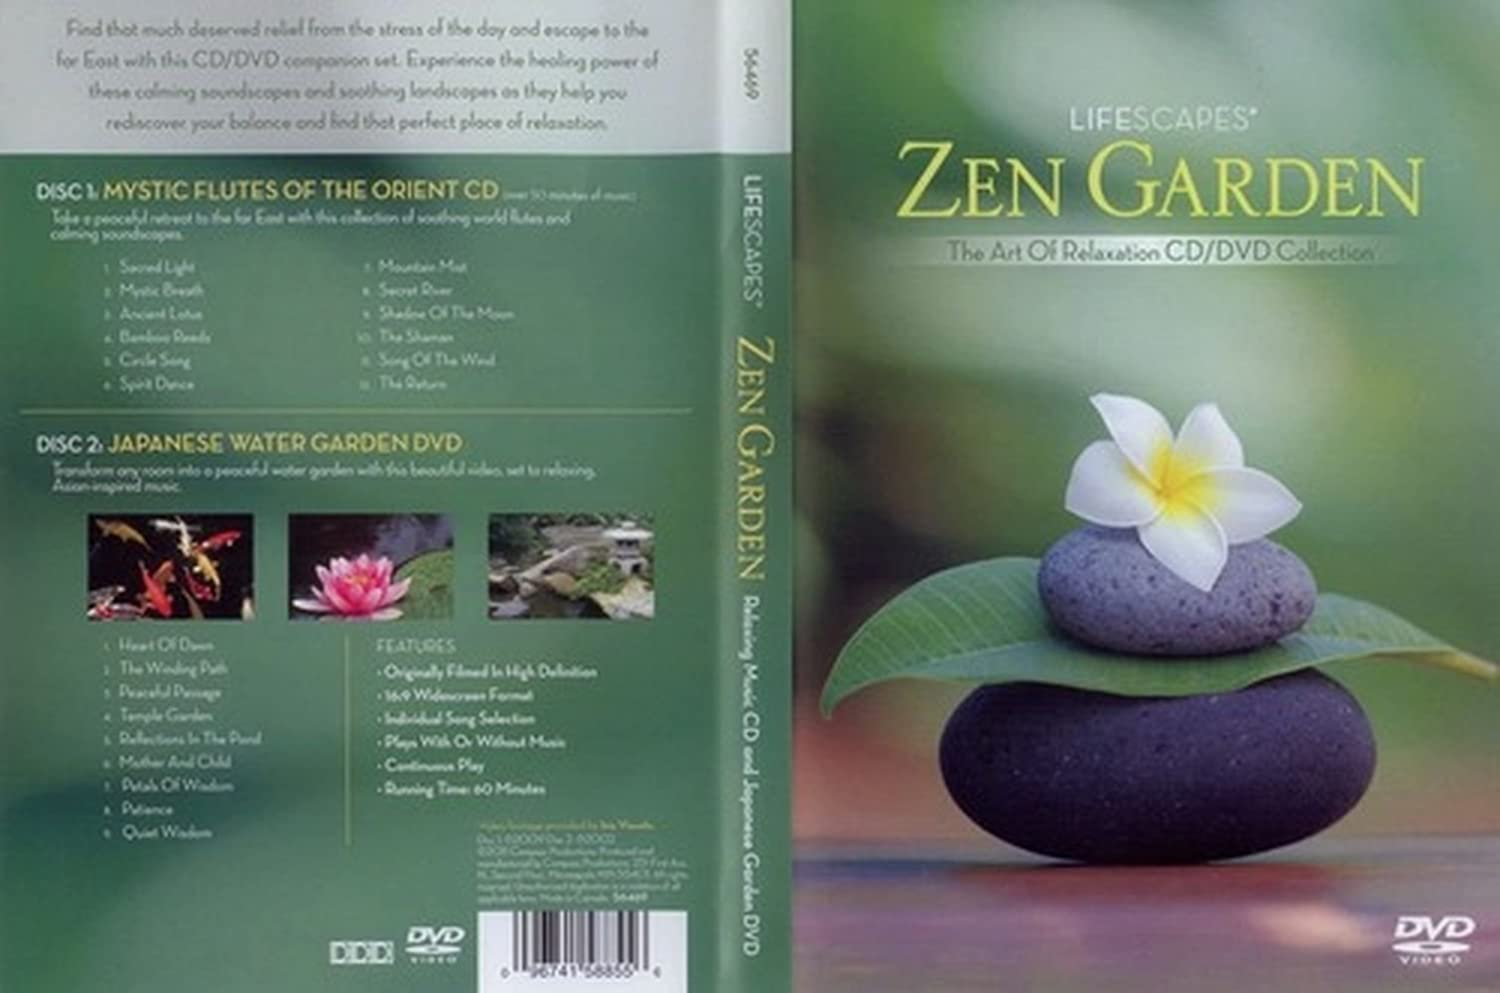 Lifescapes Zen Garden CD / DVD - The Art of Relaxation Mystic Flutes of the Orient CD / Japanese Water Garden DVD